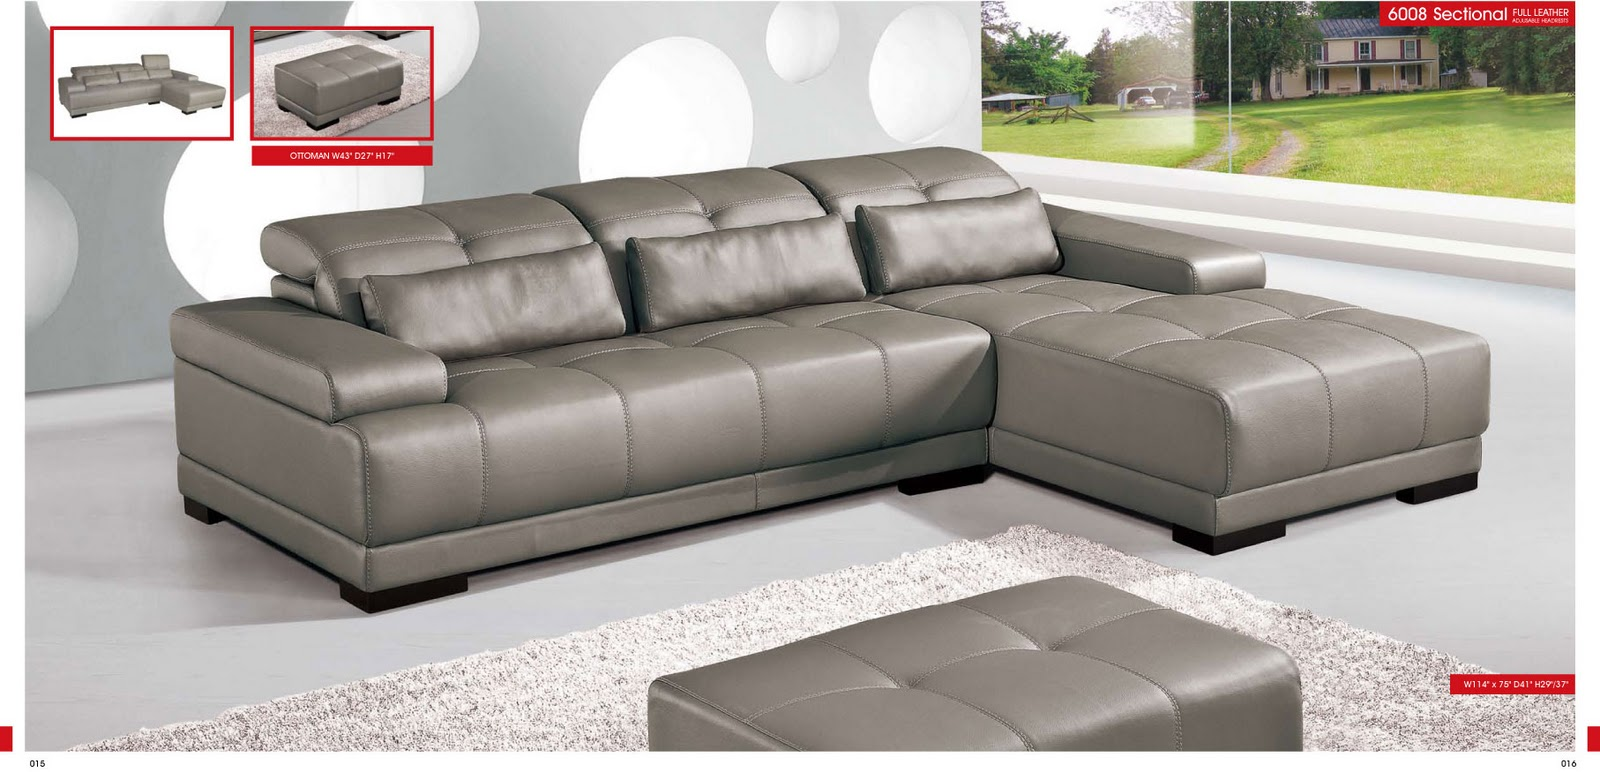 living room furniture sectionals 6008